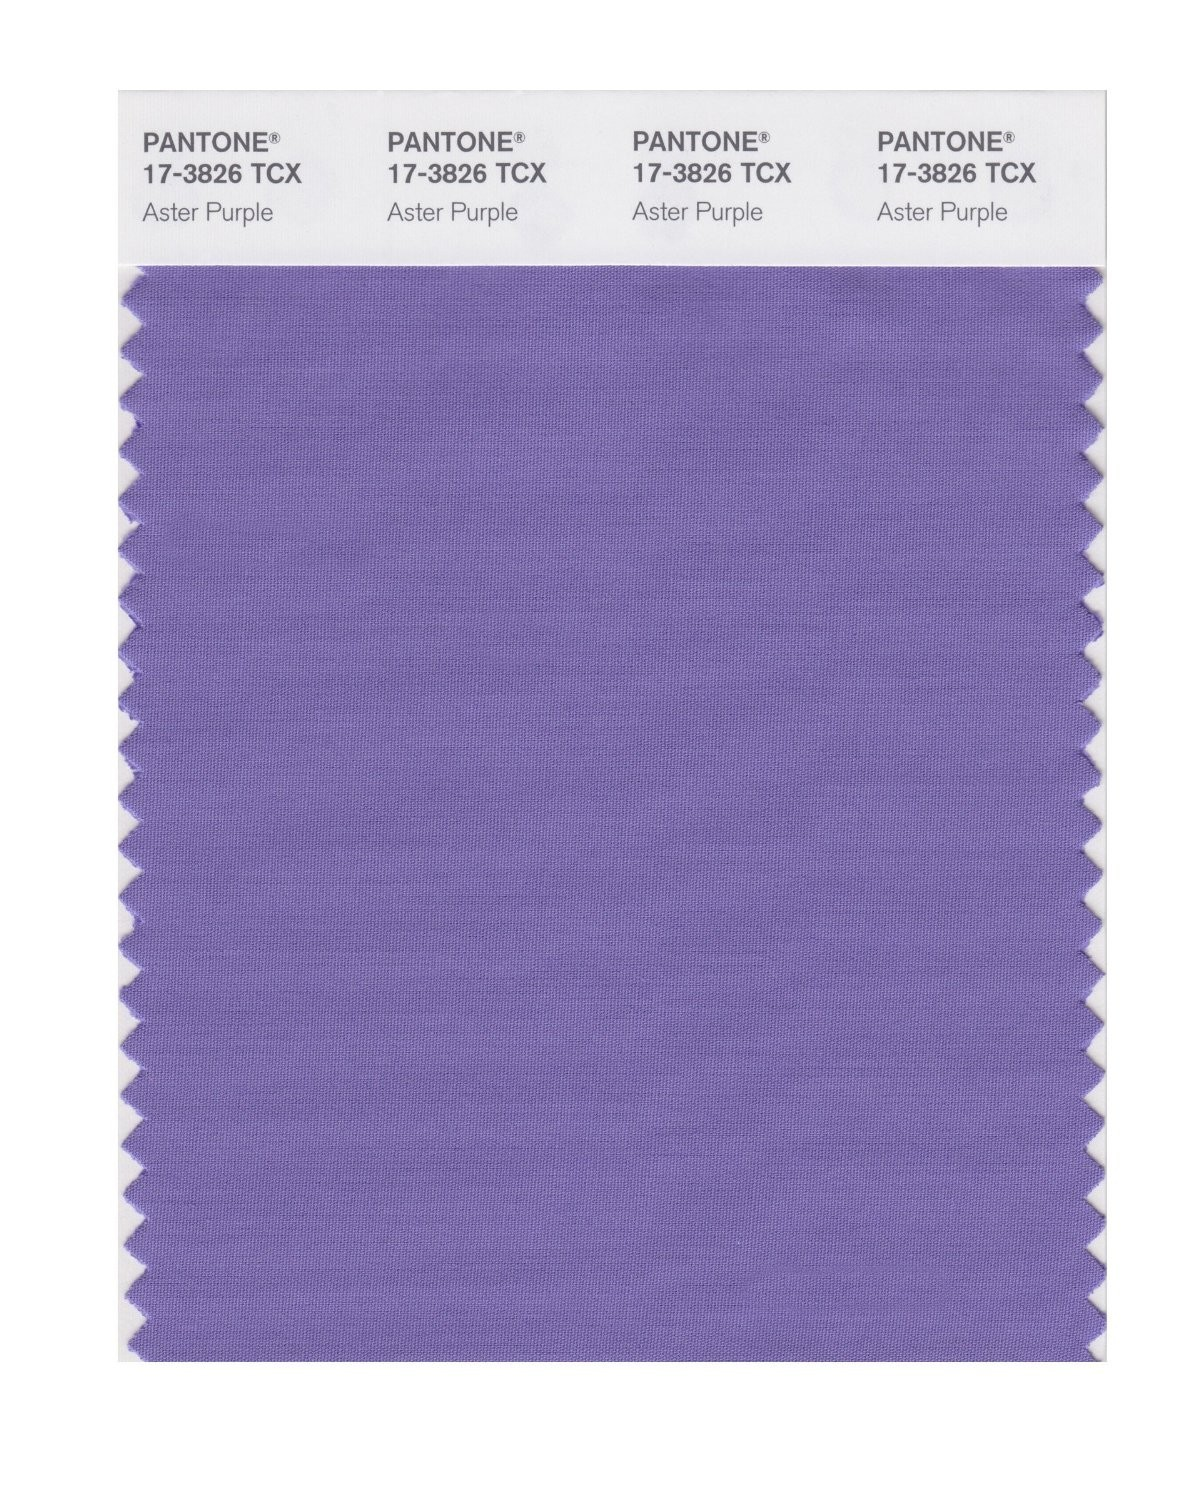 Pantone 17-3826 TCX Swatch Card Aster Purple